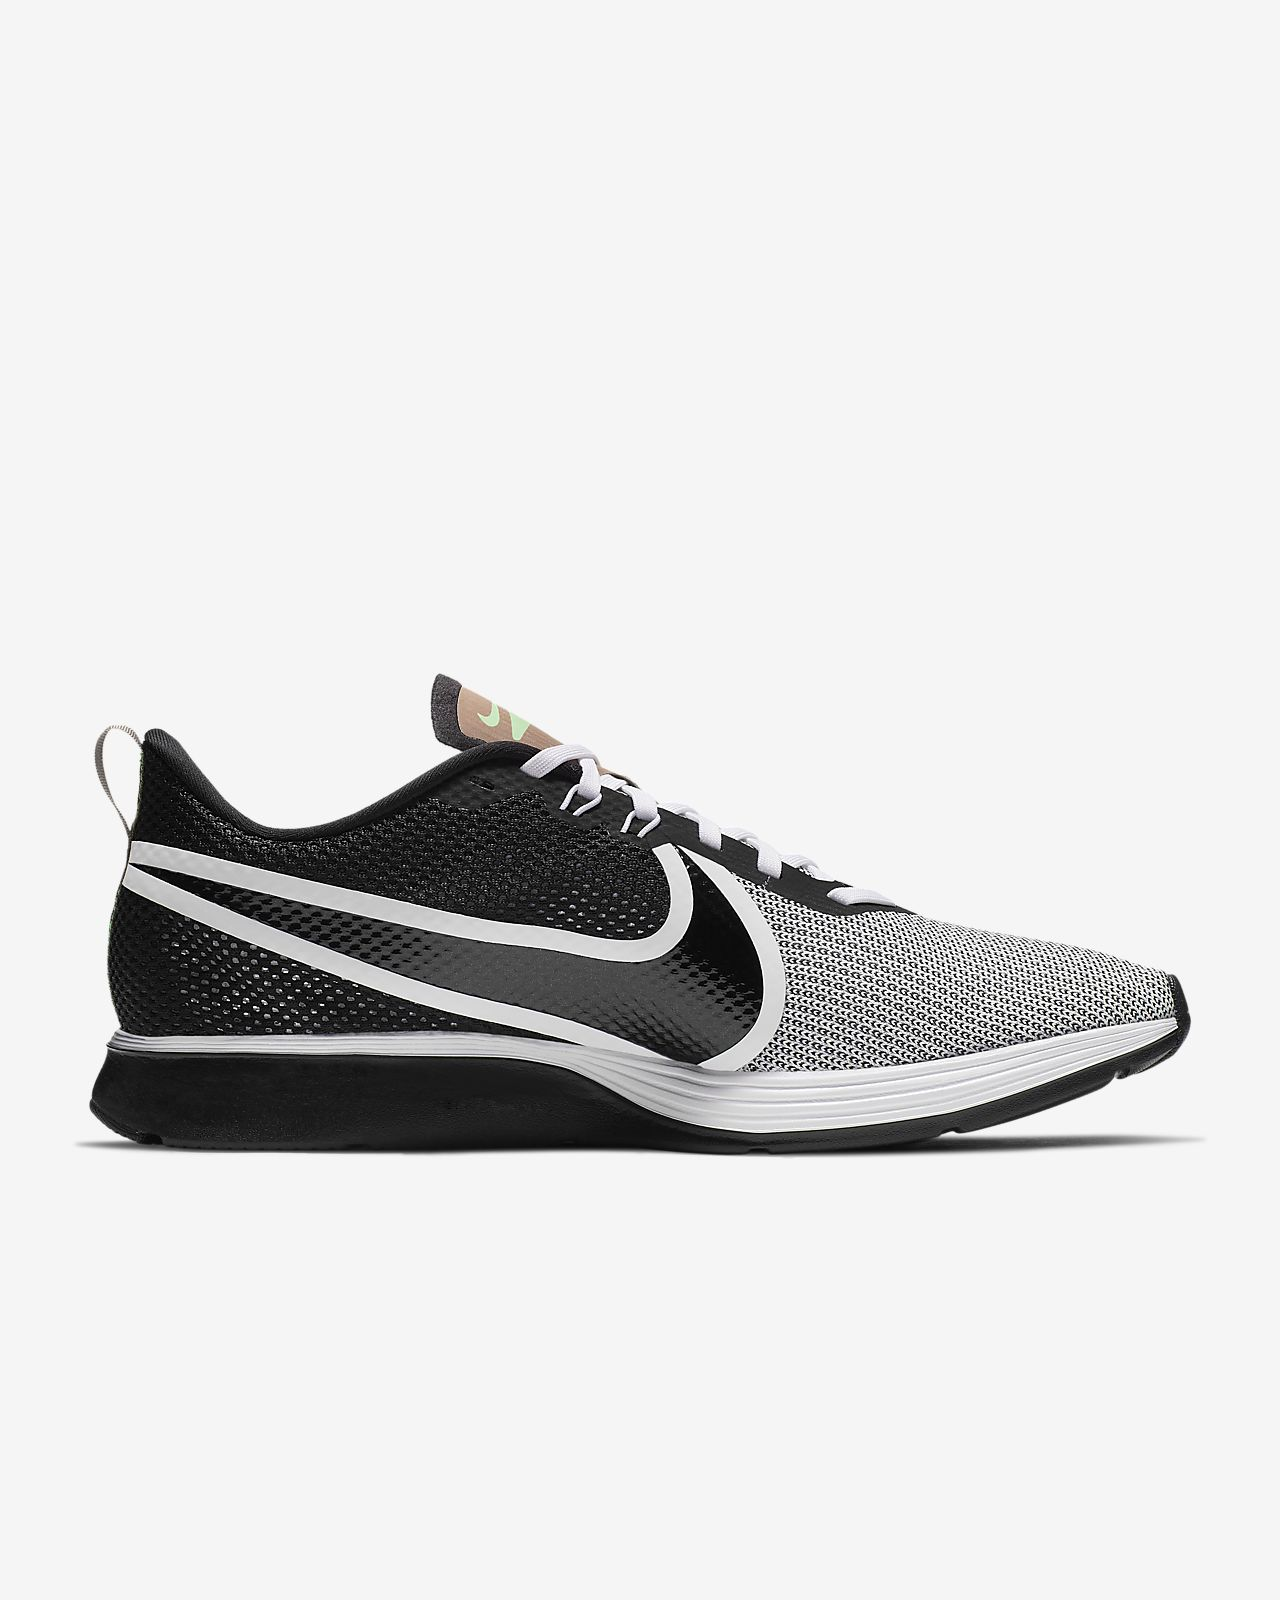 info for 0bfc9 d6184 ... Chaussure de running Nike Zoom Strike 2 SE pour Homme